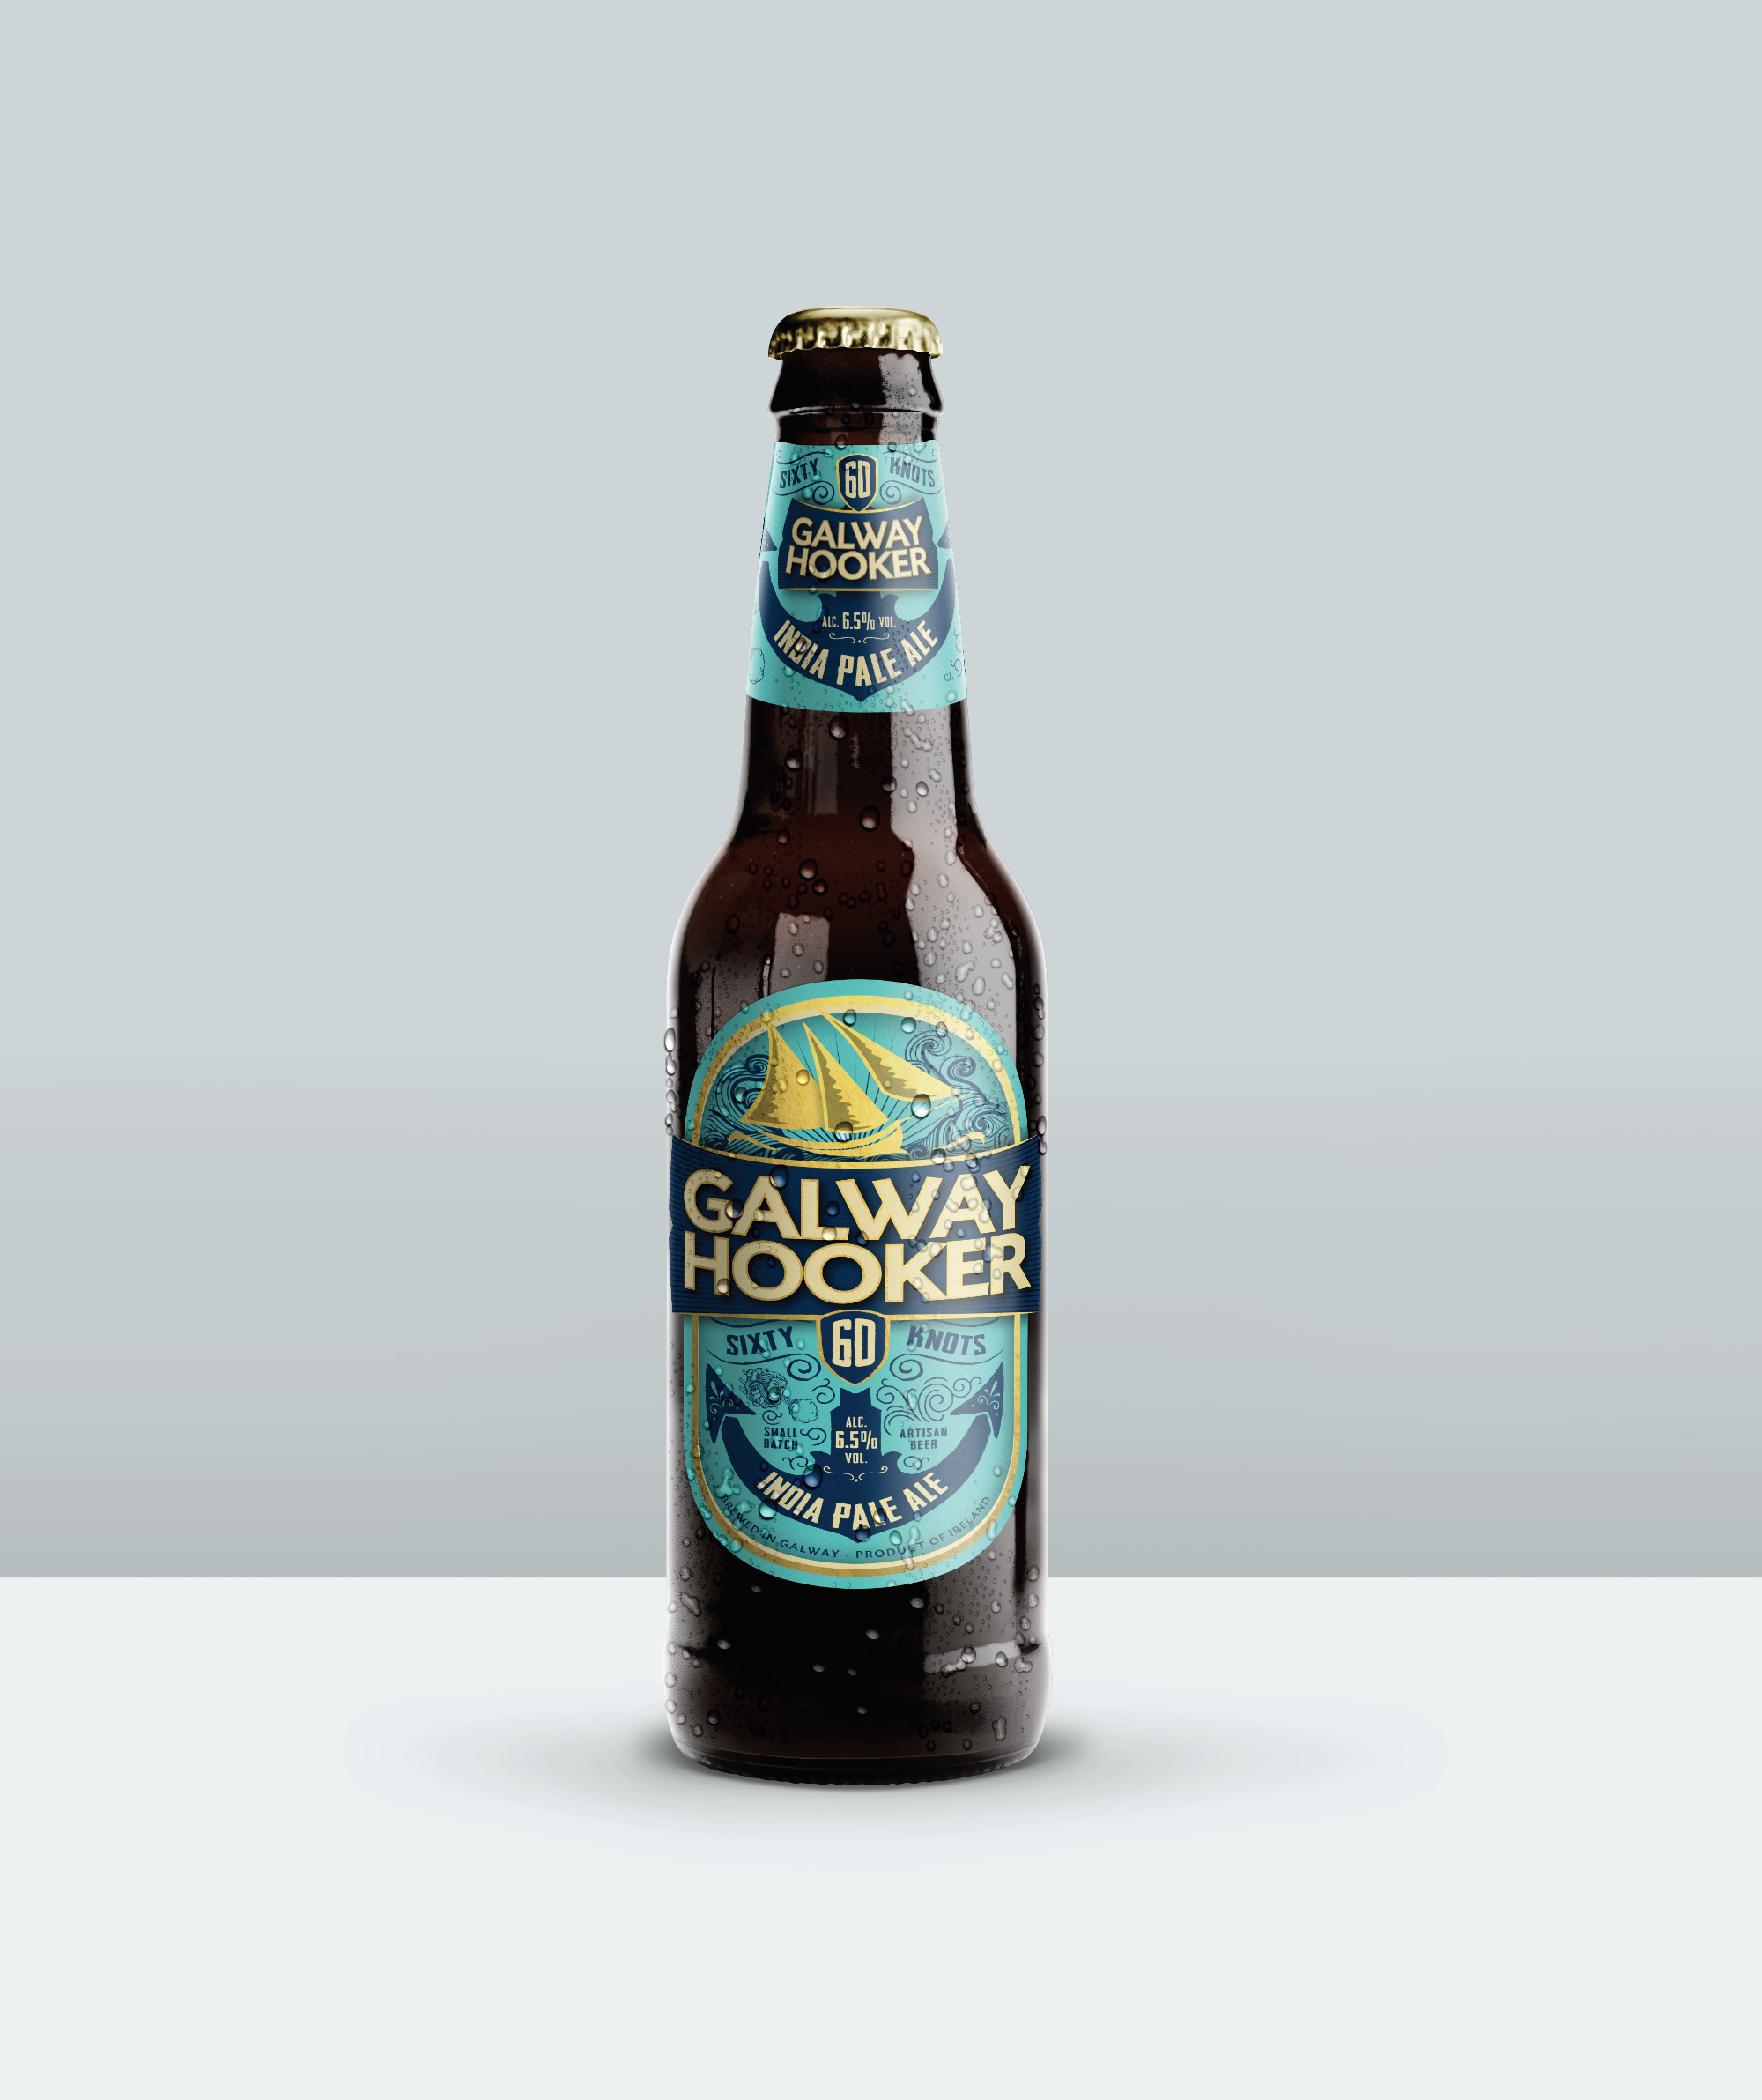 Cover image: Galway Hooker '60 Knots' IPA